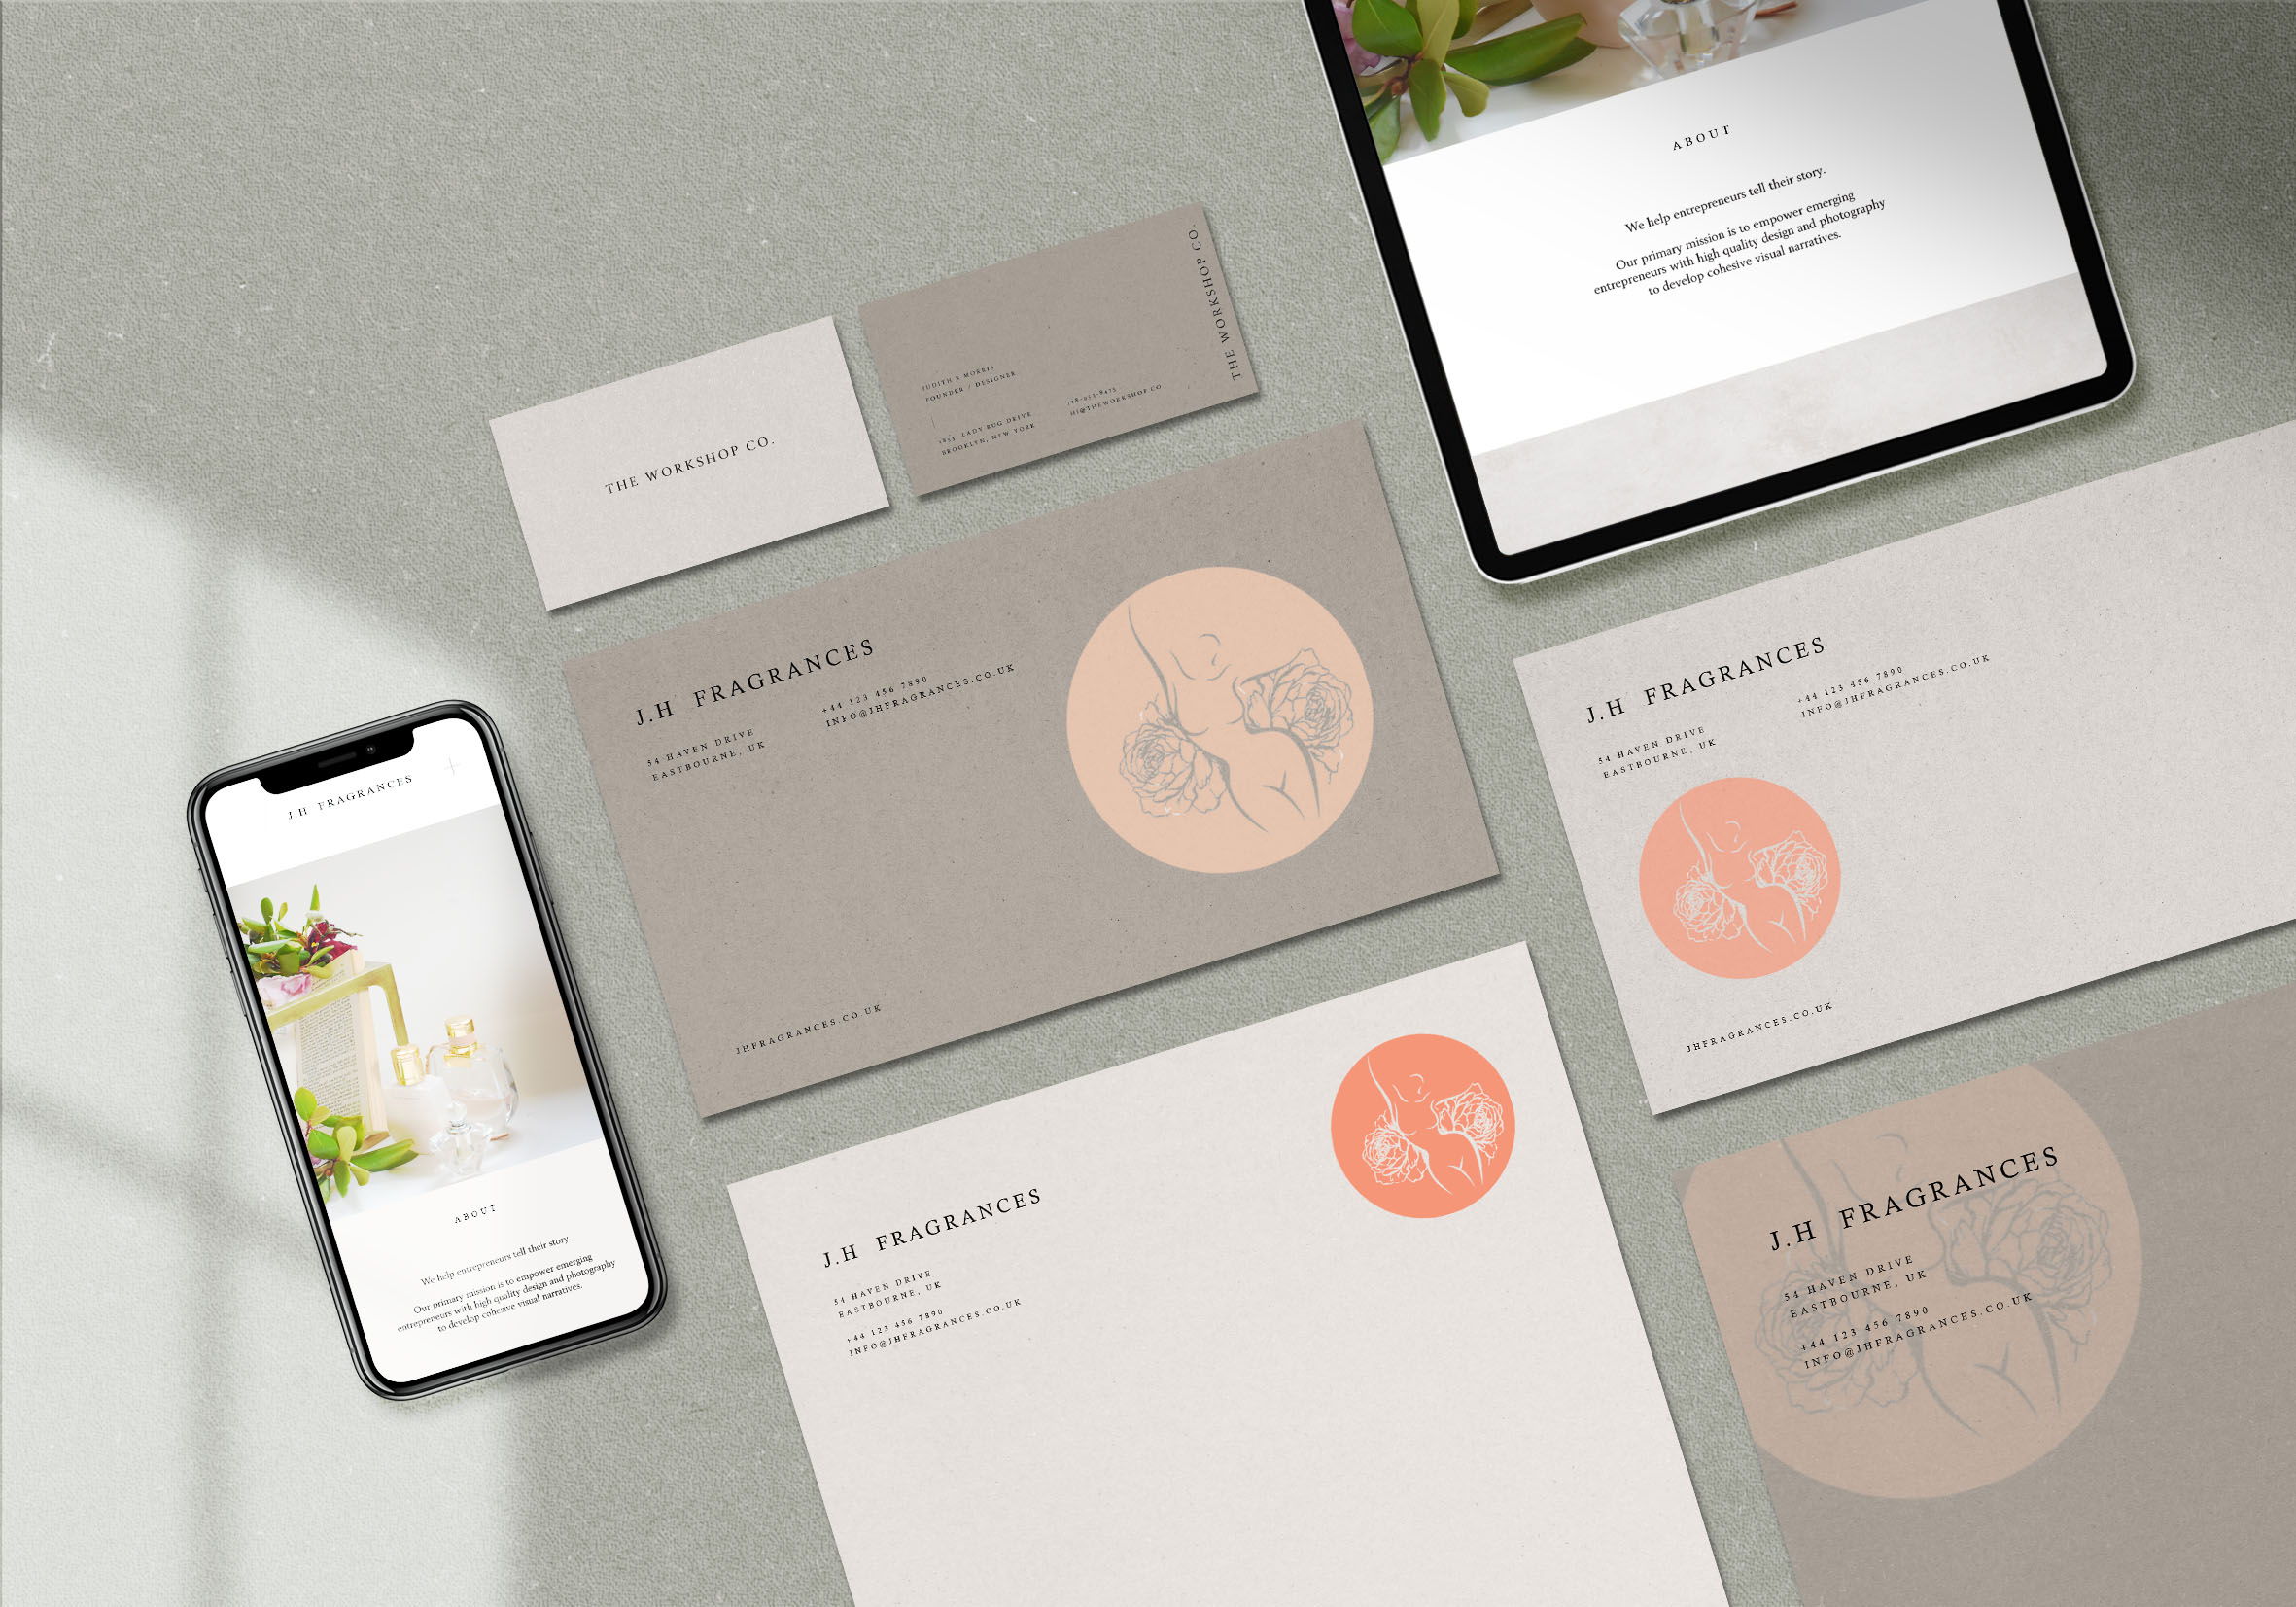 Harlow. design fragrances perfume stationery and devices mock up